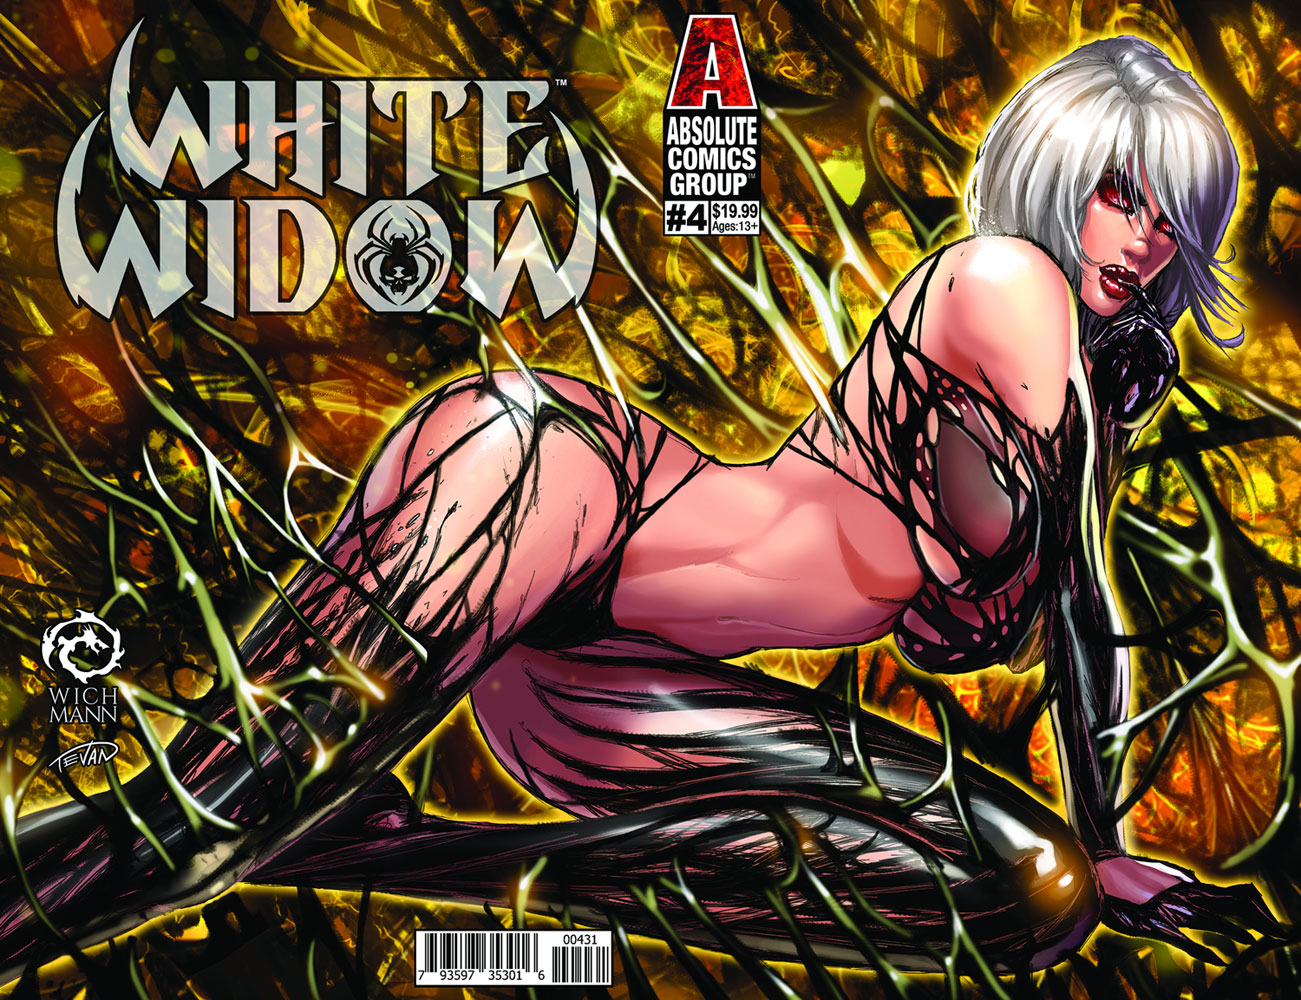 White Widow #4 (cover C - Wichmann Lenticular) - Absolute Comics Group / Red Gi